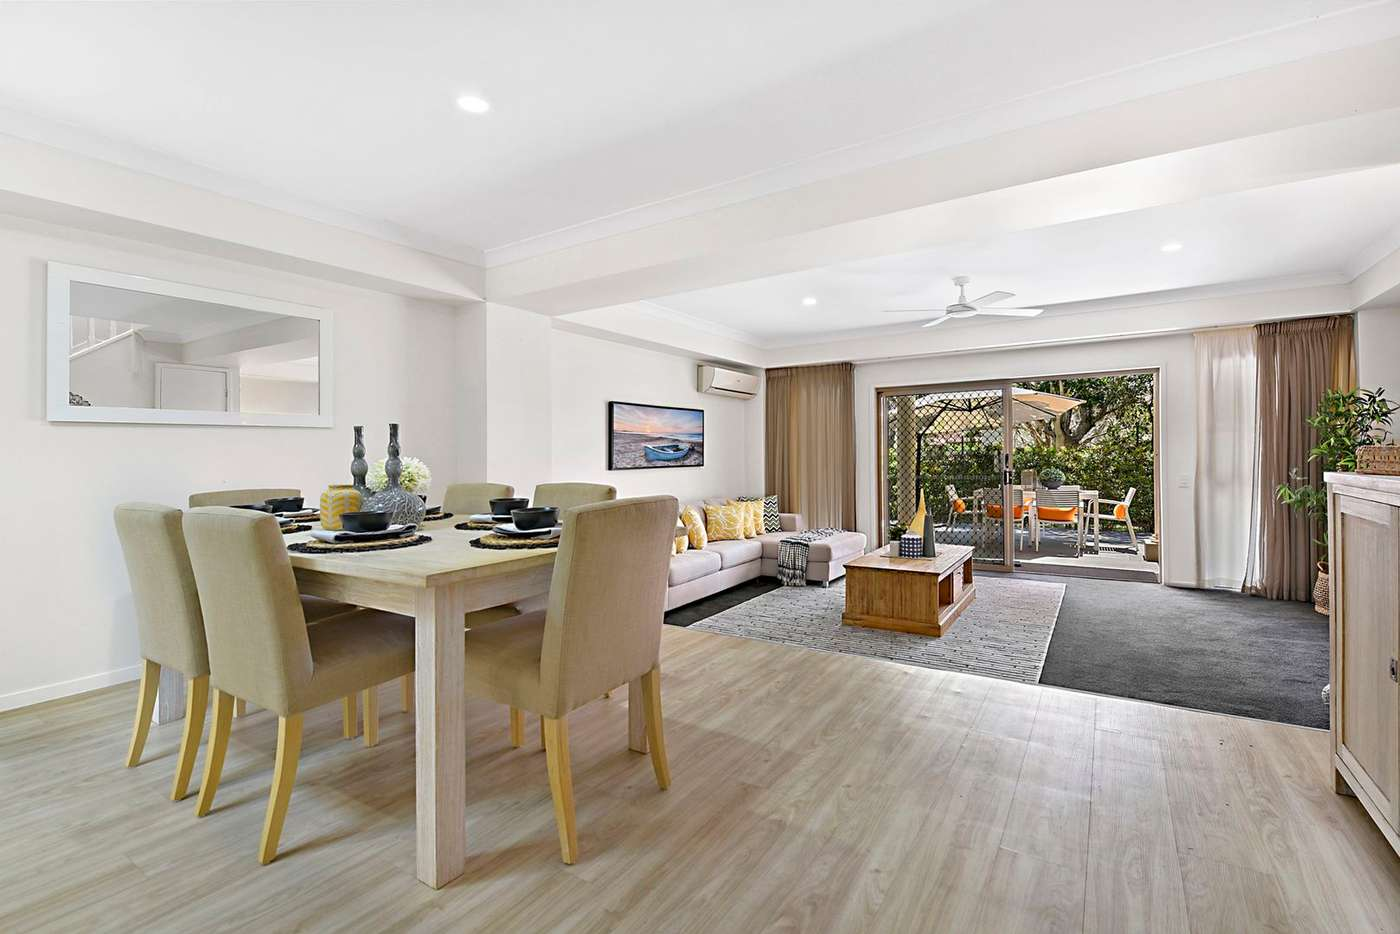 Main view of Homely house listing, 31/5 Bronberg Court, Southport QLD 4215